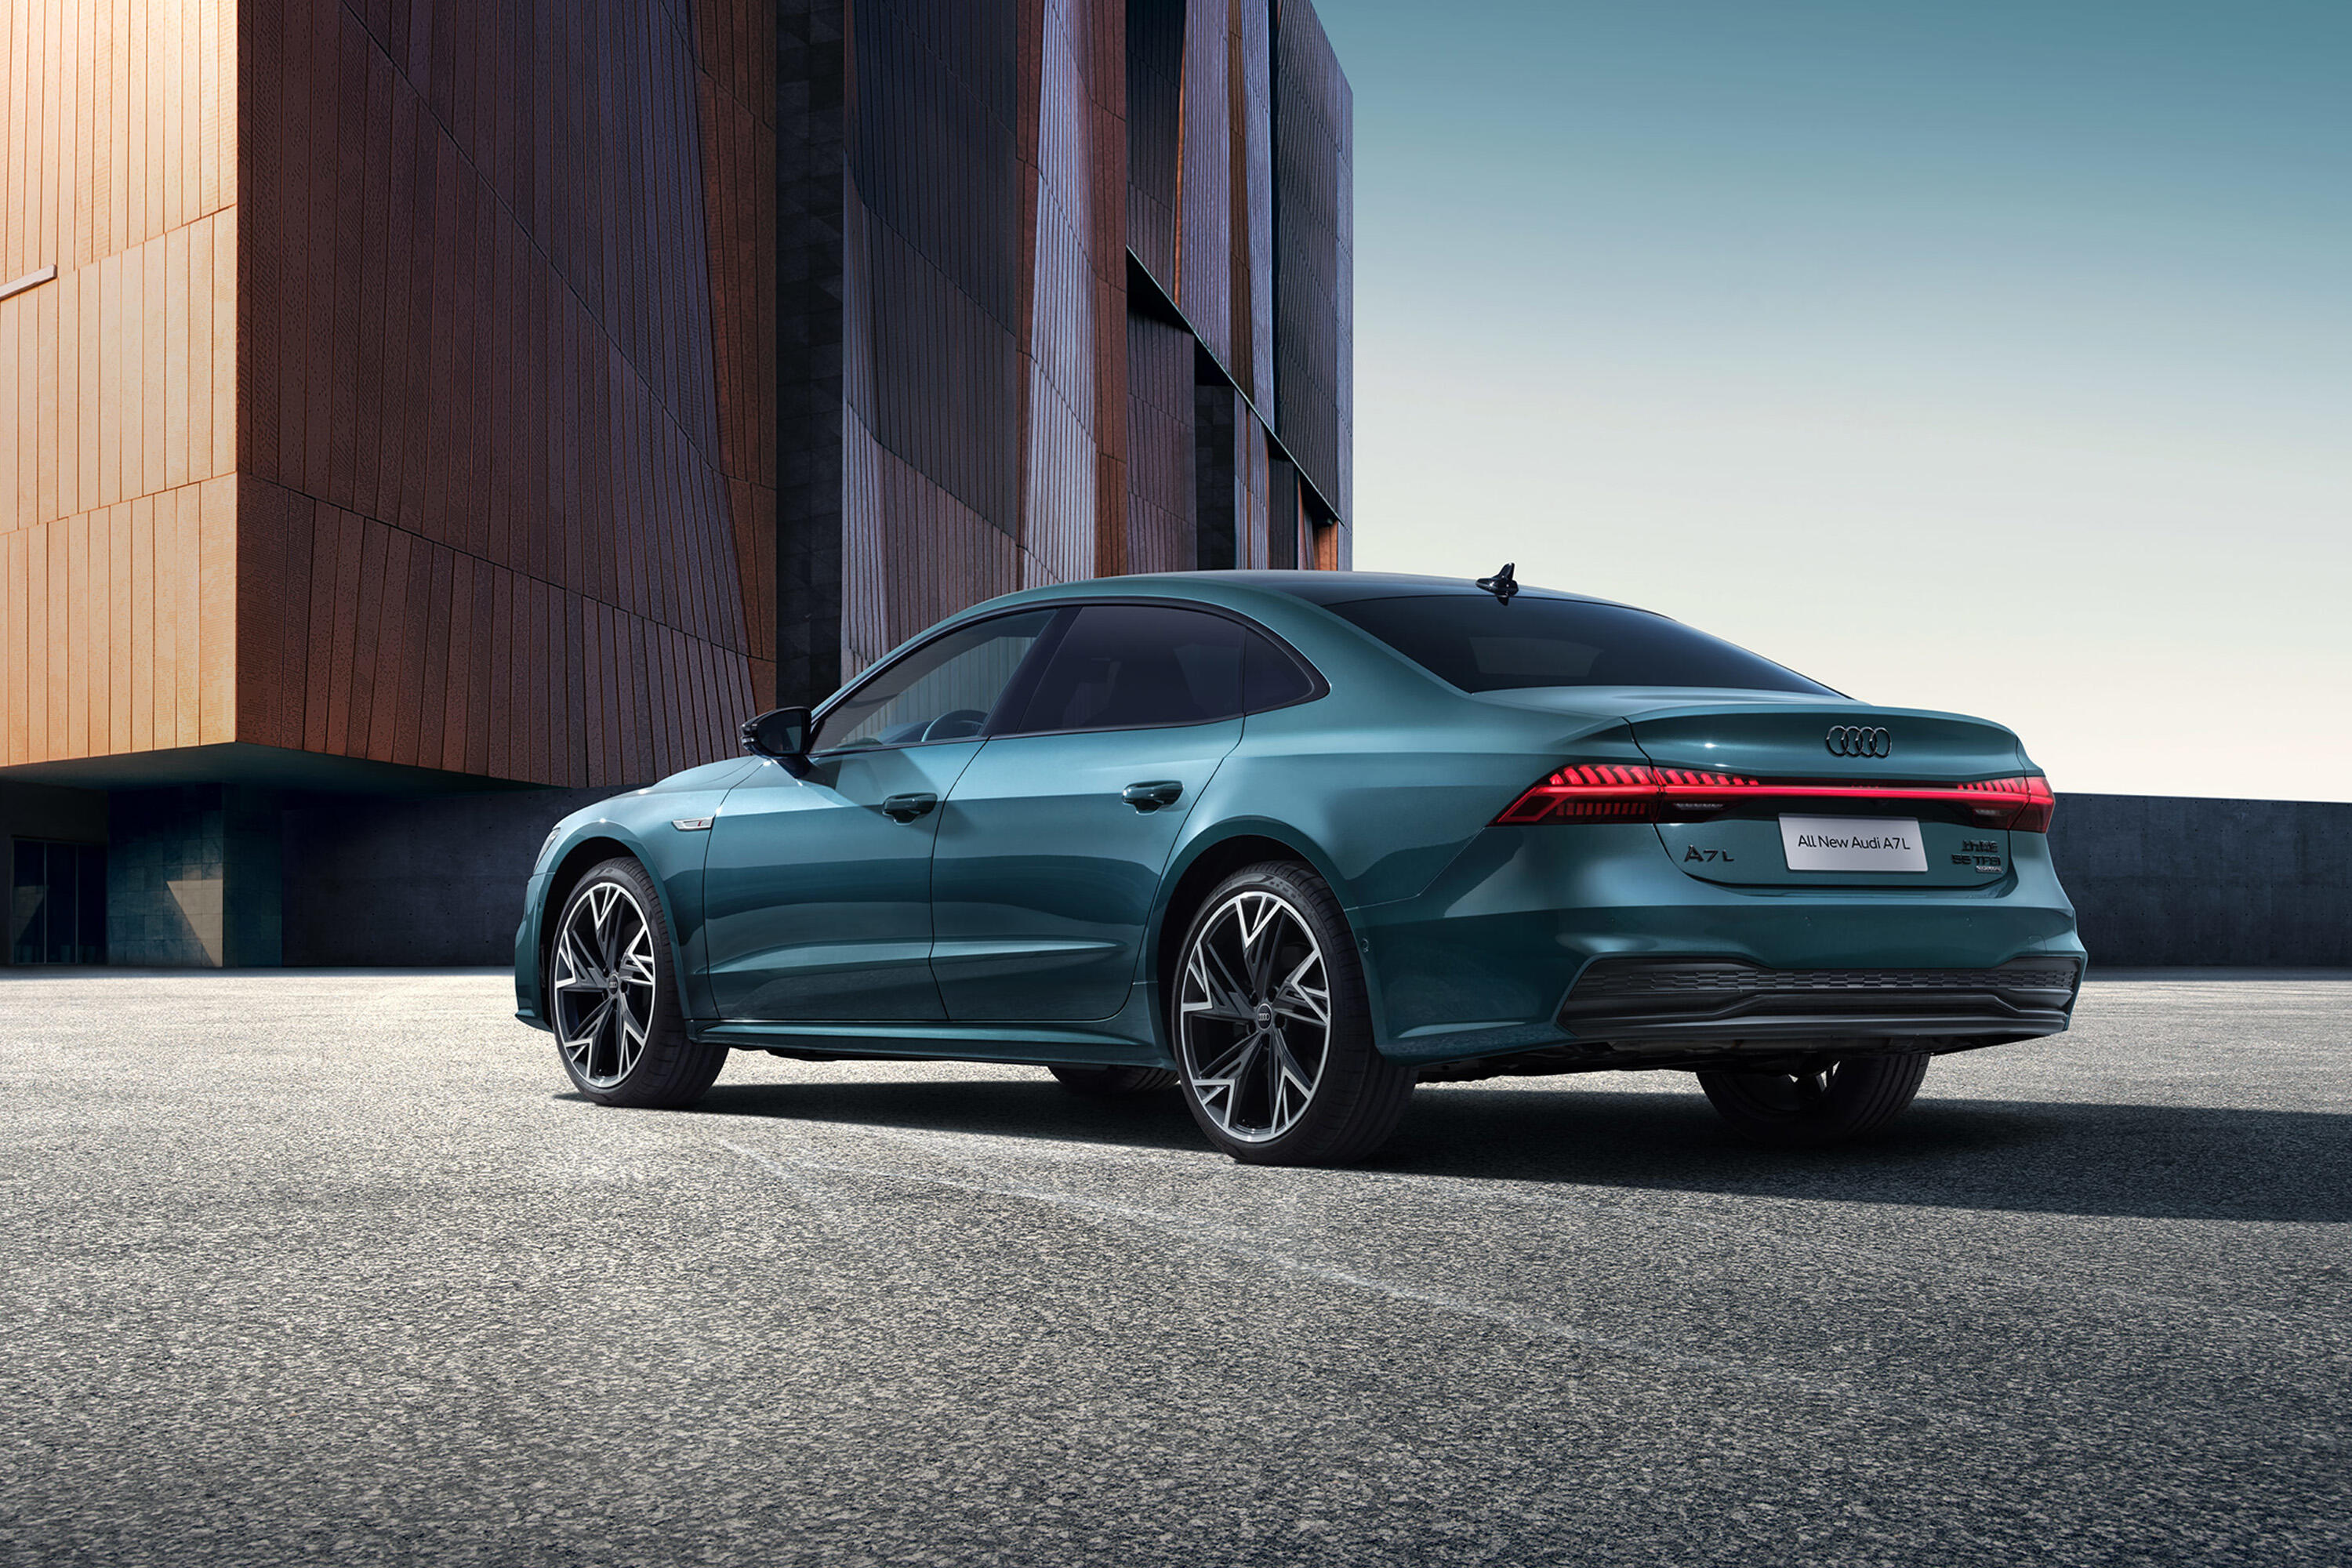 The Audi A7L can stay in China because it looks super odd     - Roadshow